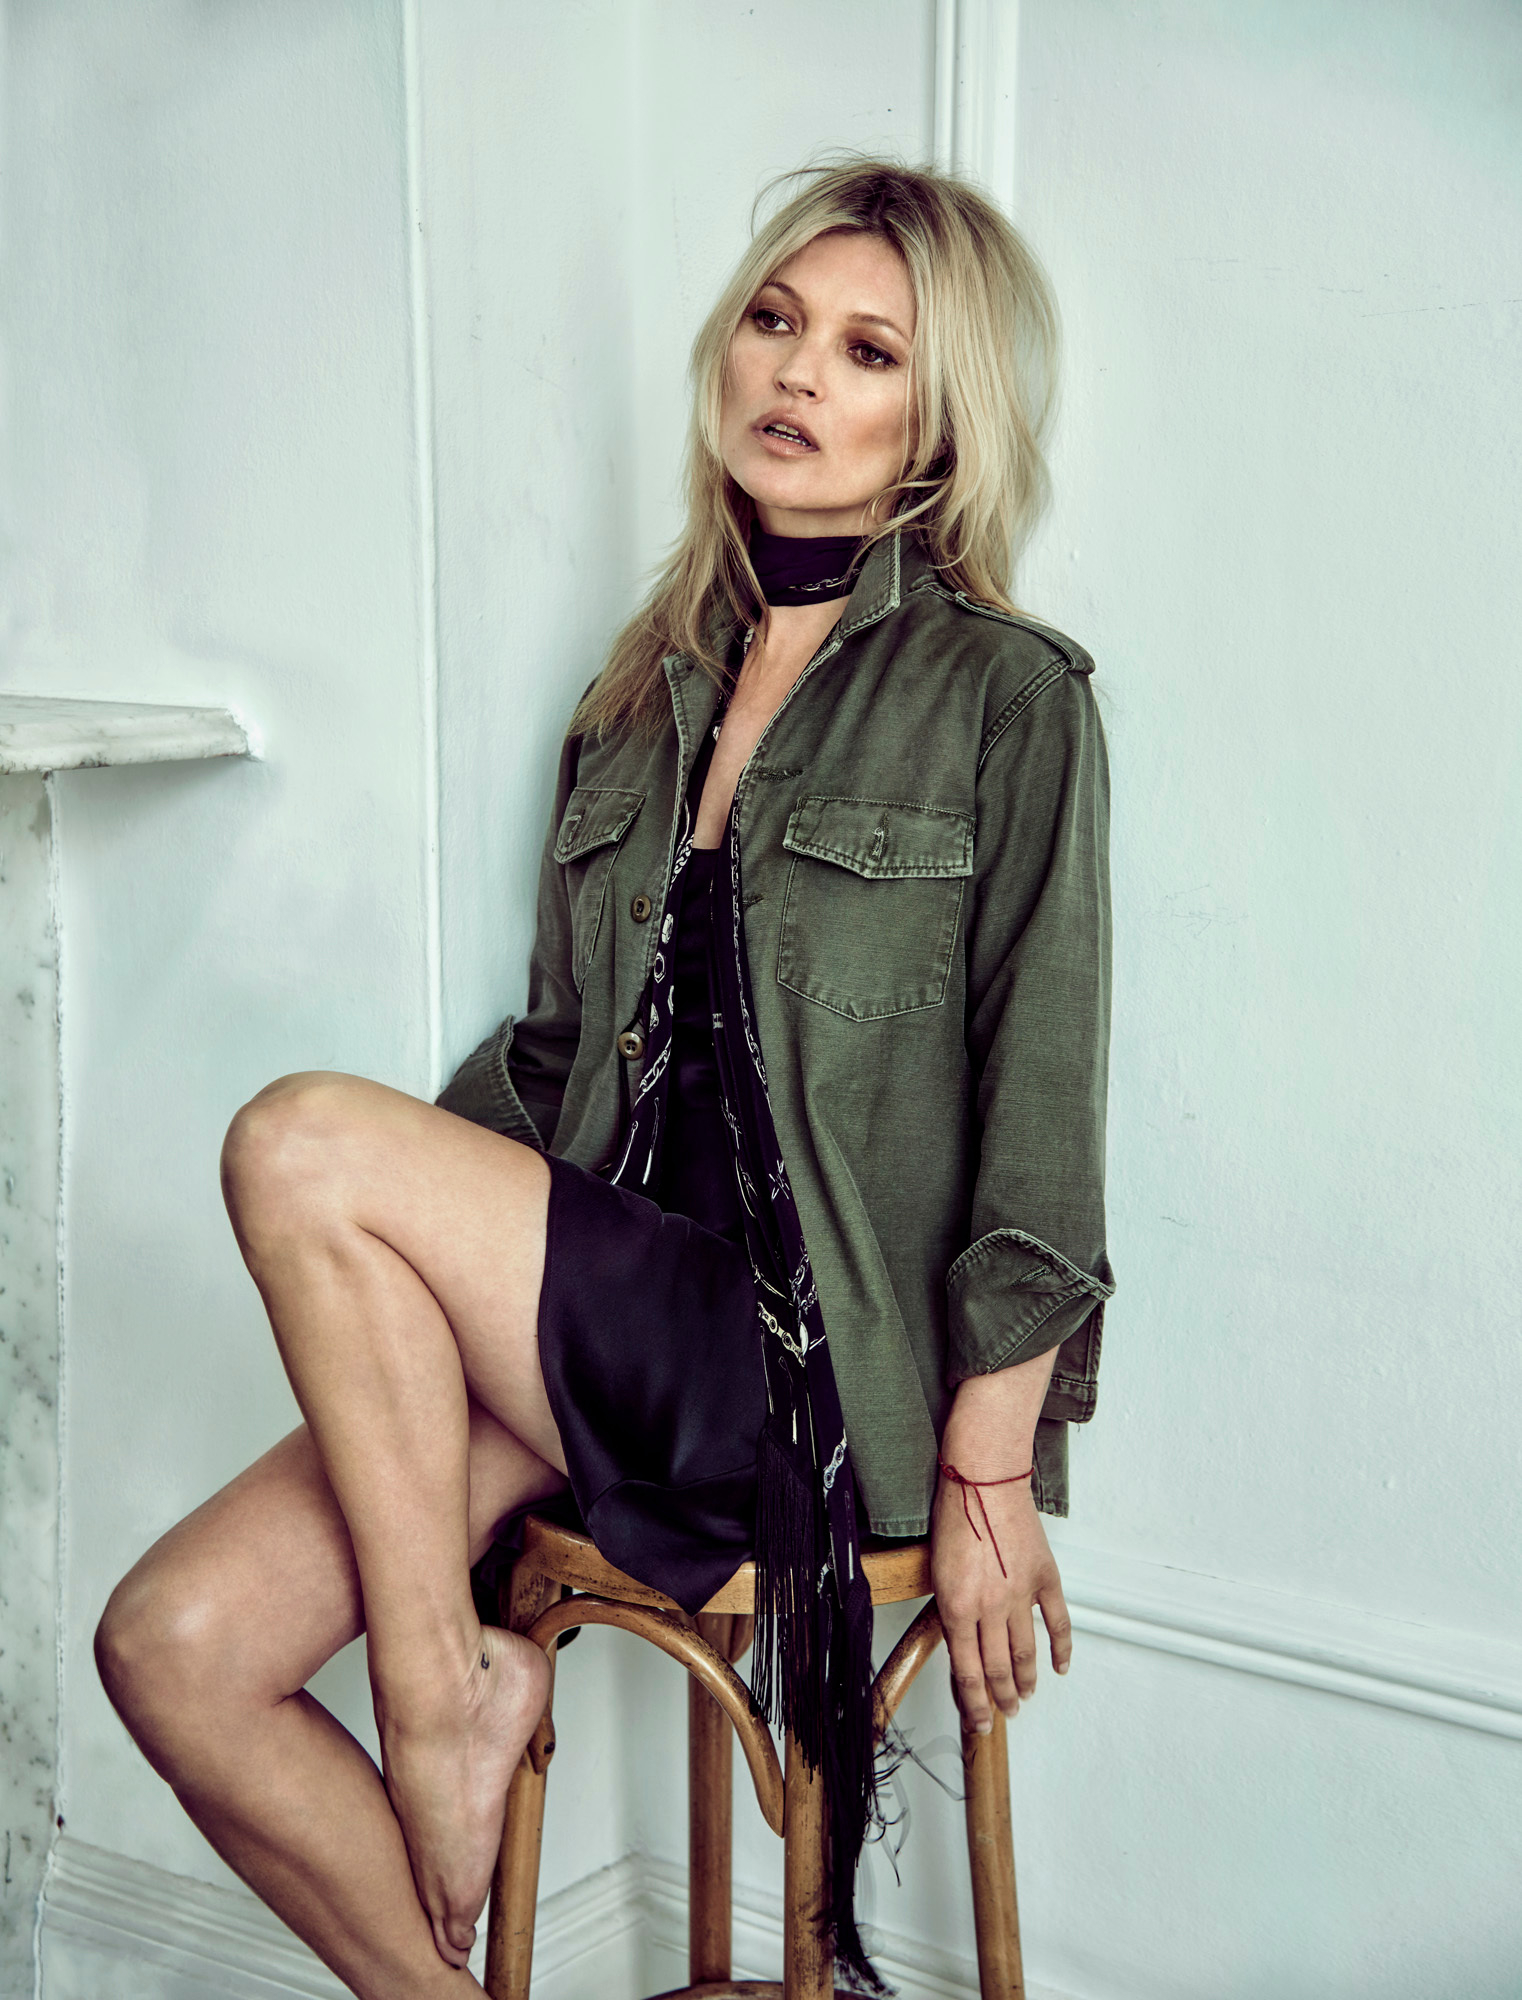 kate-moss-by-chris-colls-for-the-edit-june-2016-5.jpg